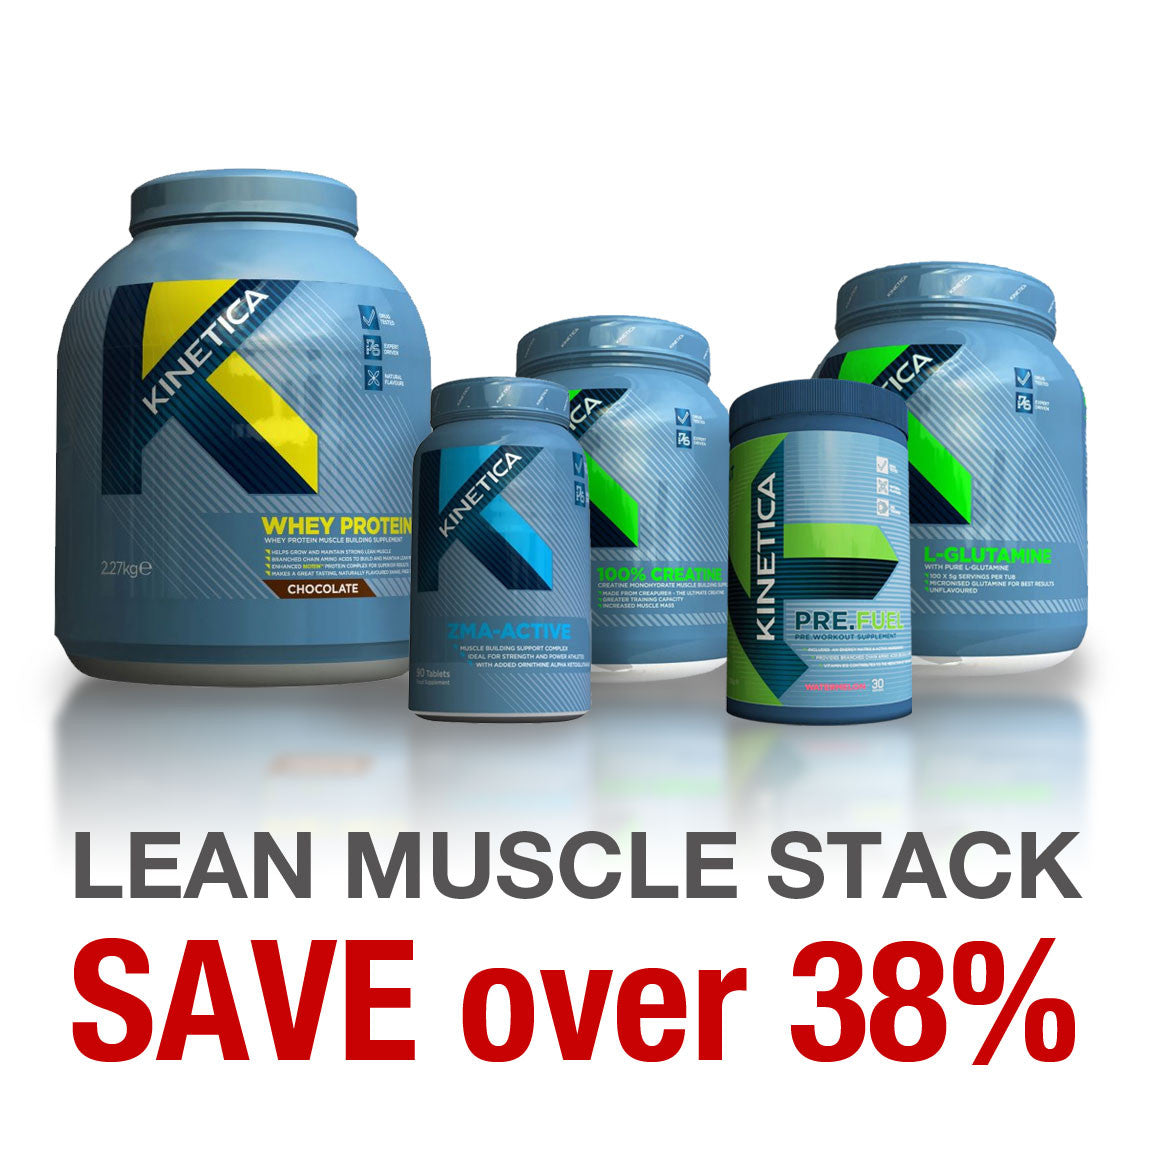 Kinetica Lean Muscle Stack